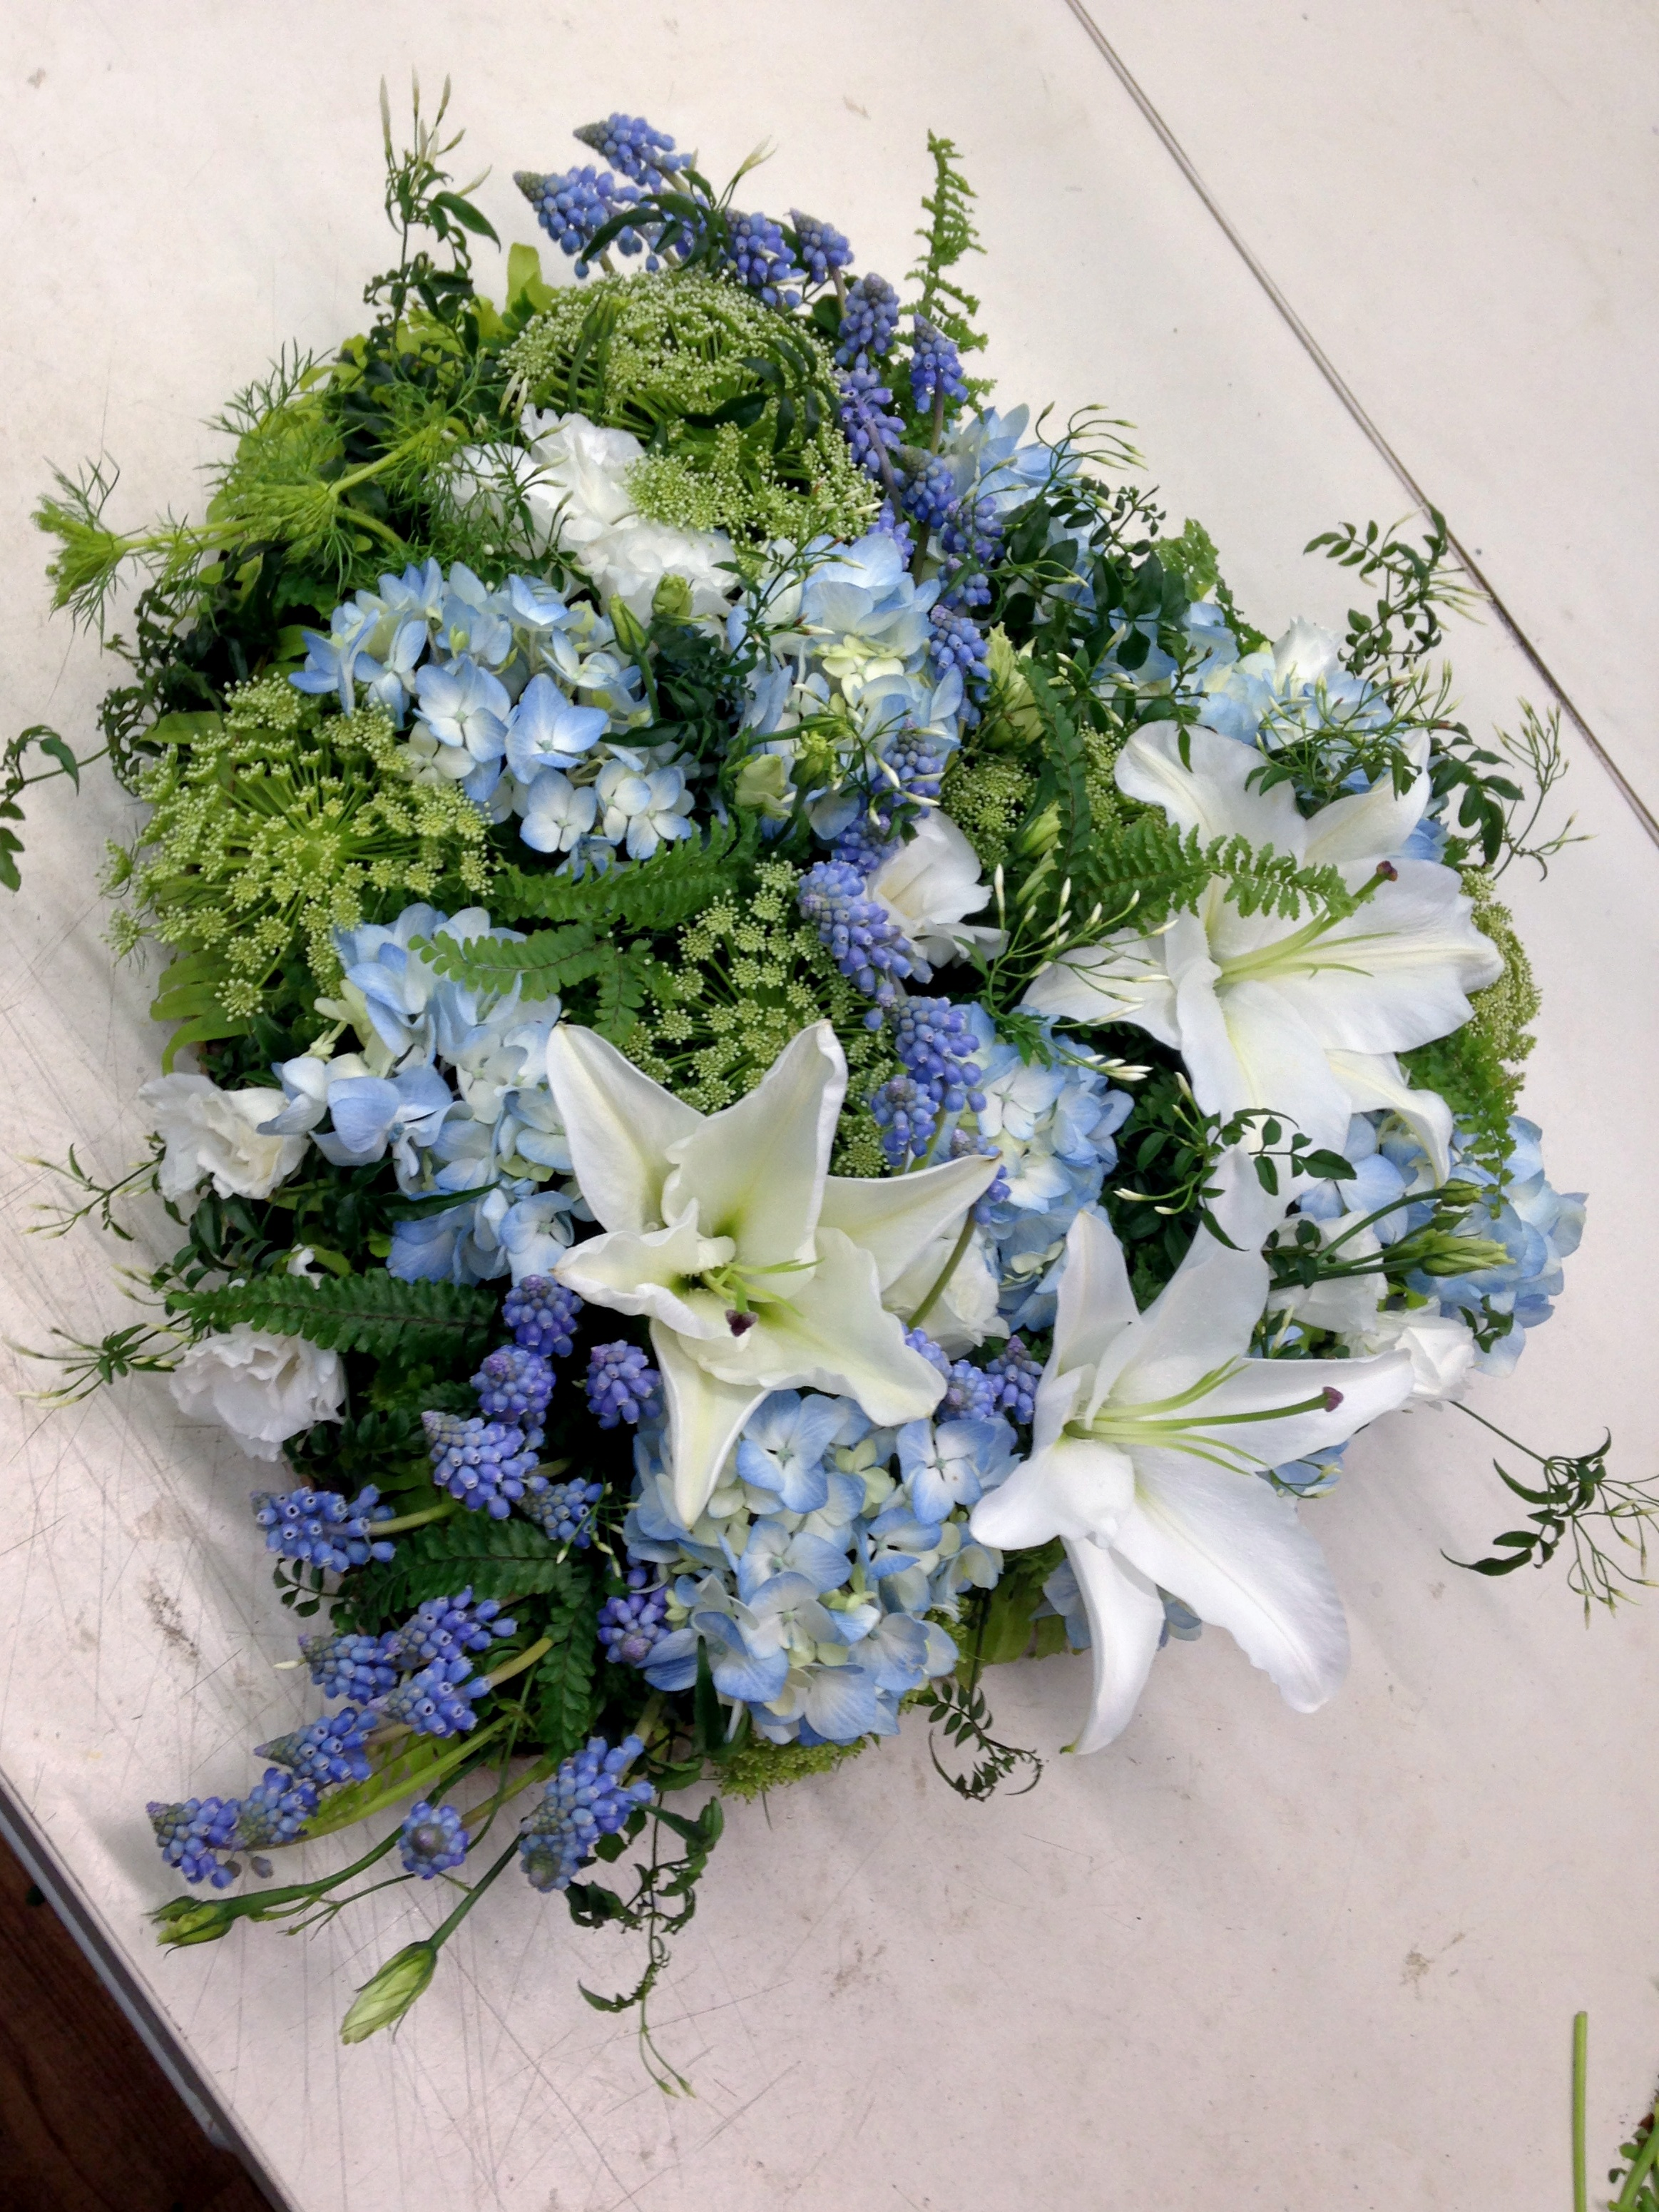 Blue Heart Tribute Hydrangeas Lilies Muscari Queen Ann.jpg